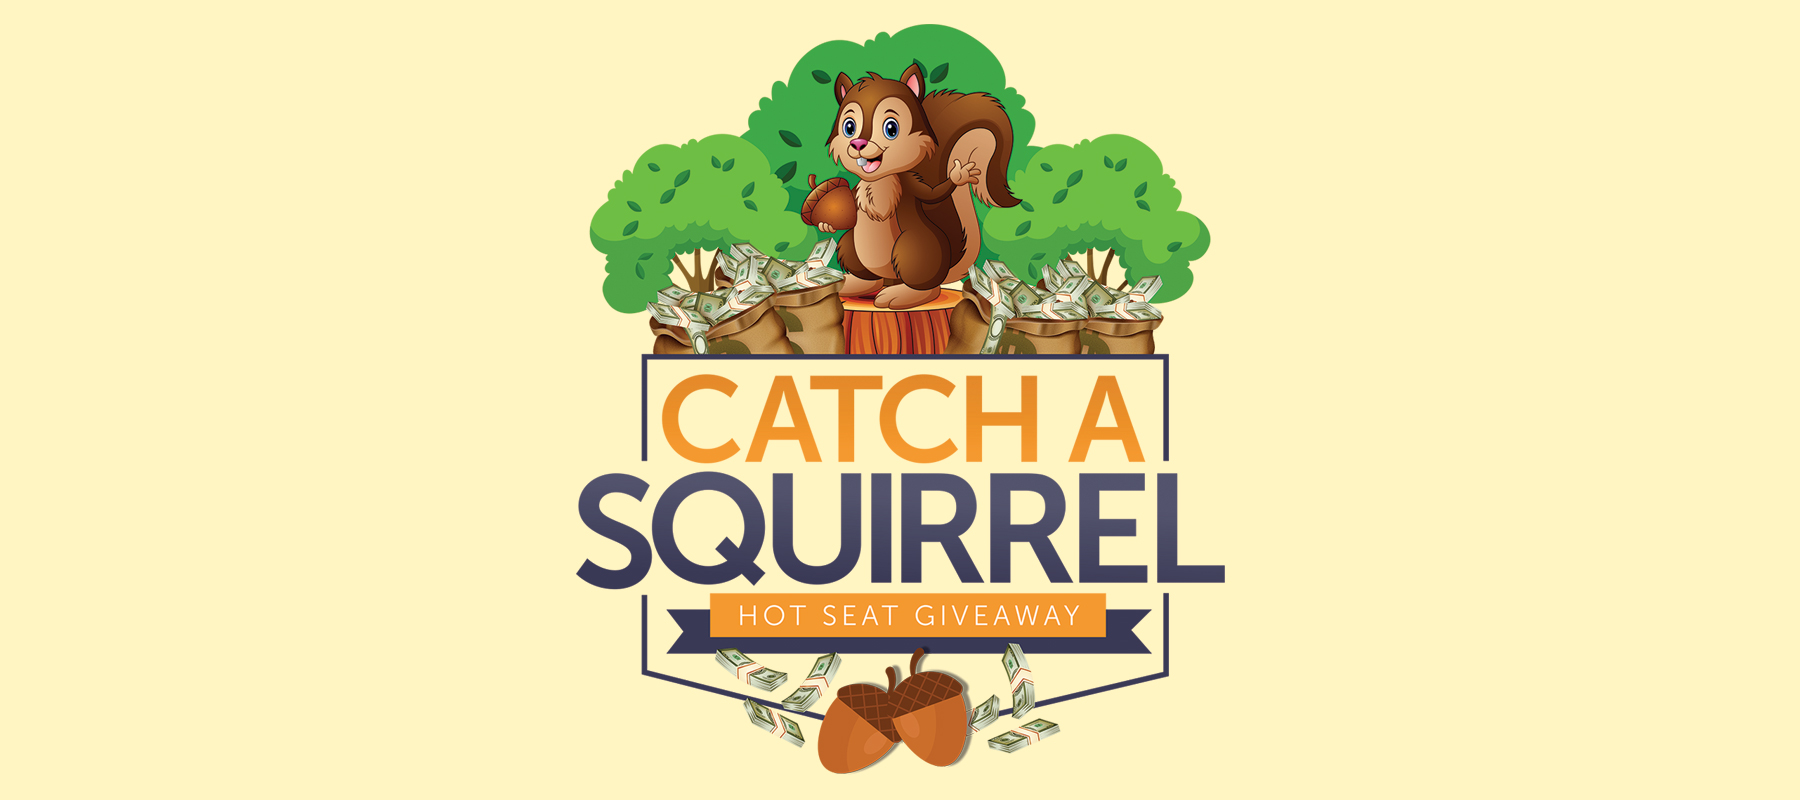 Catch a Squirrel Hot Seat Giveaway